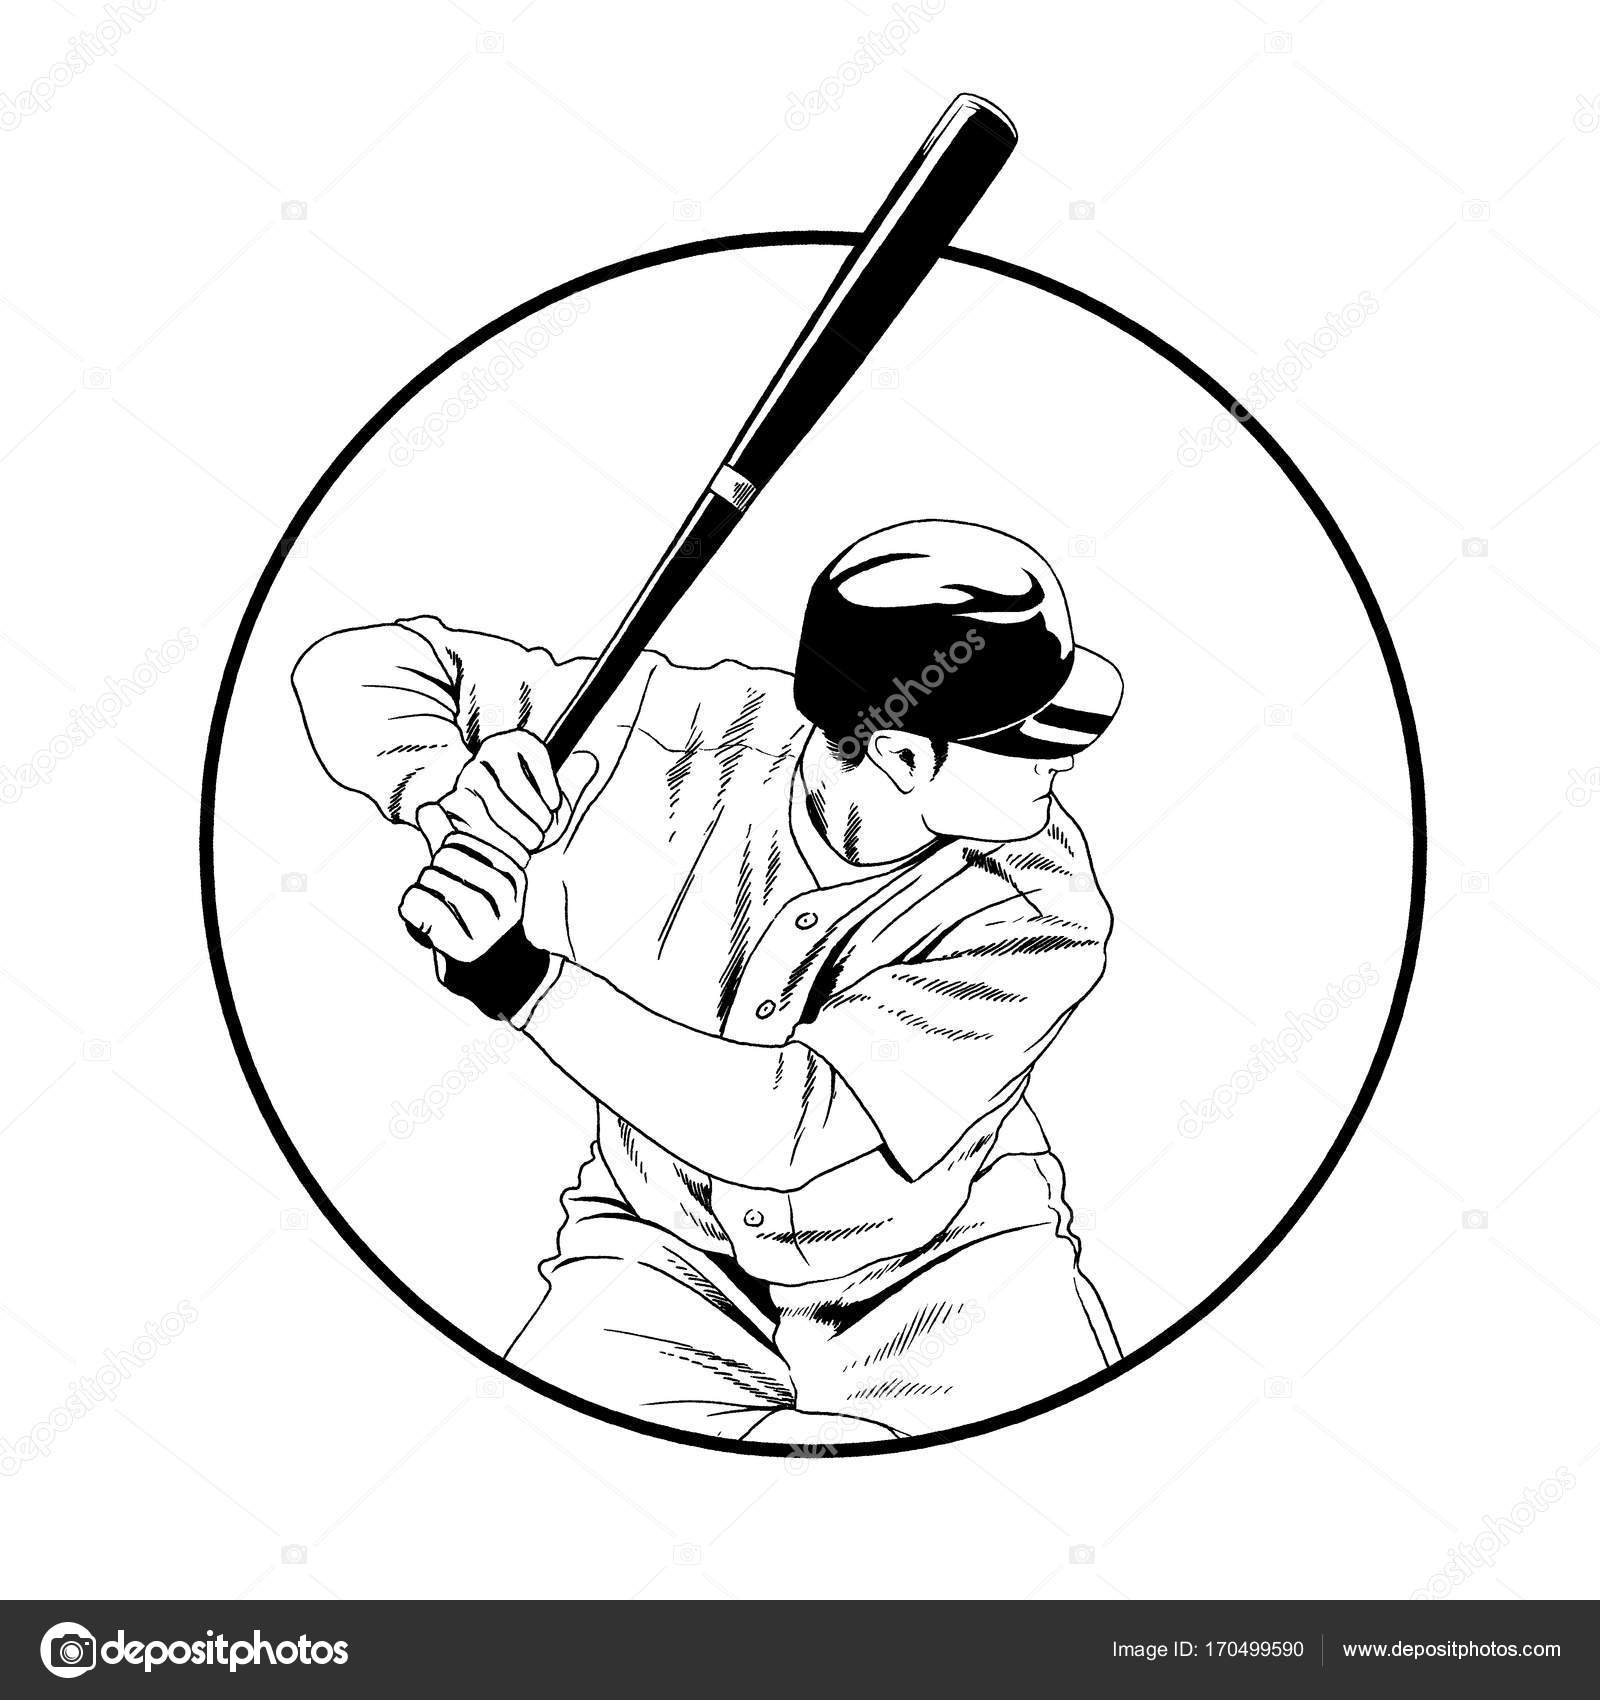 1600x1700 Baseball Player With A Bat In The Pose Drawn With Ink Hand Sketch